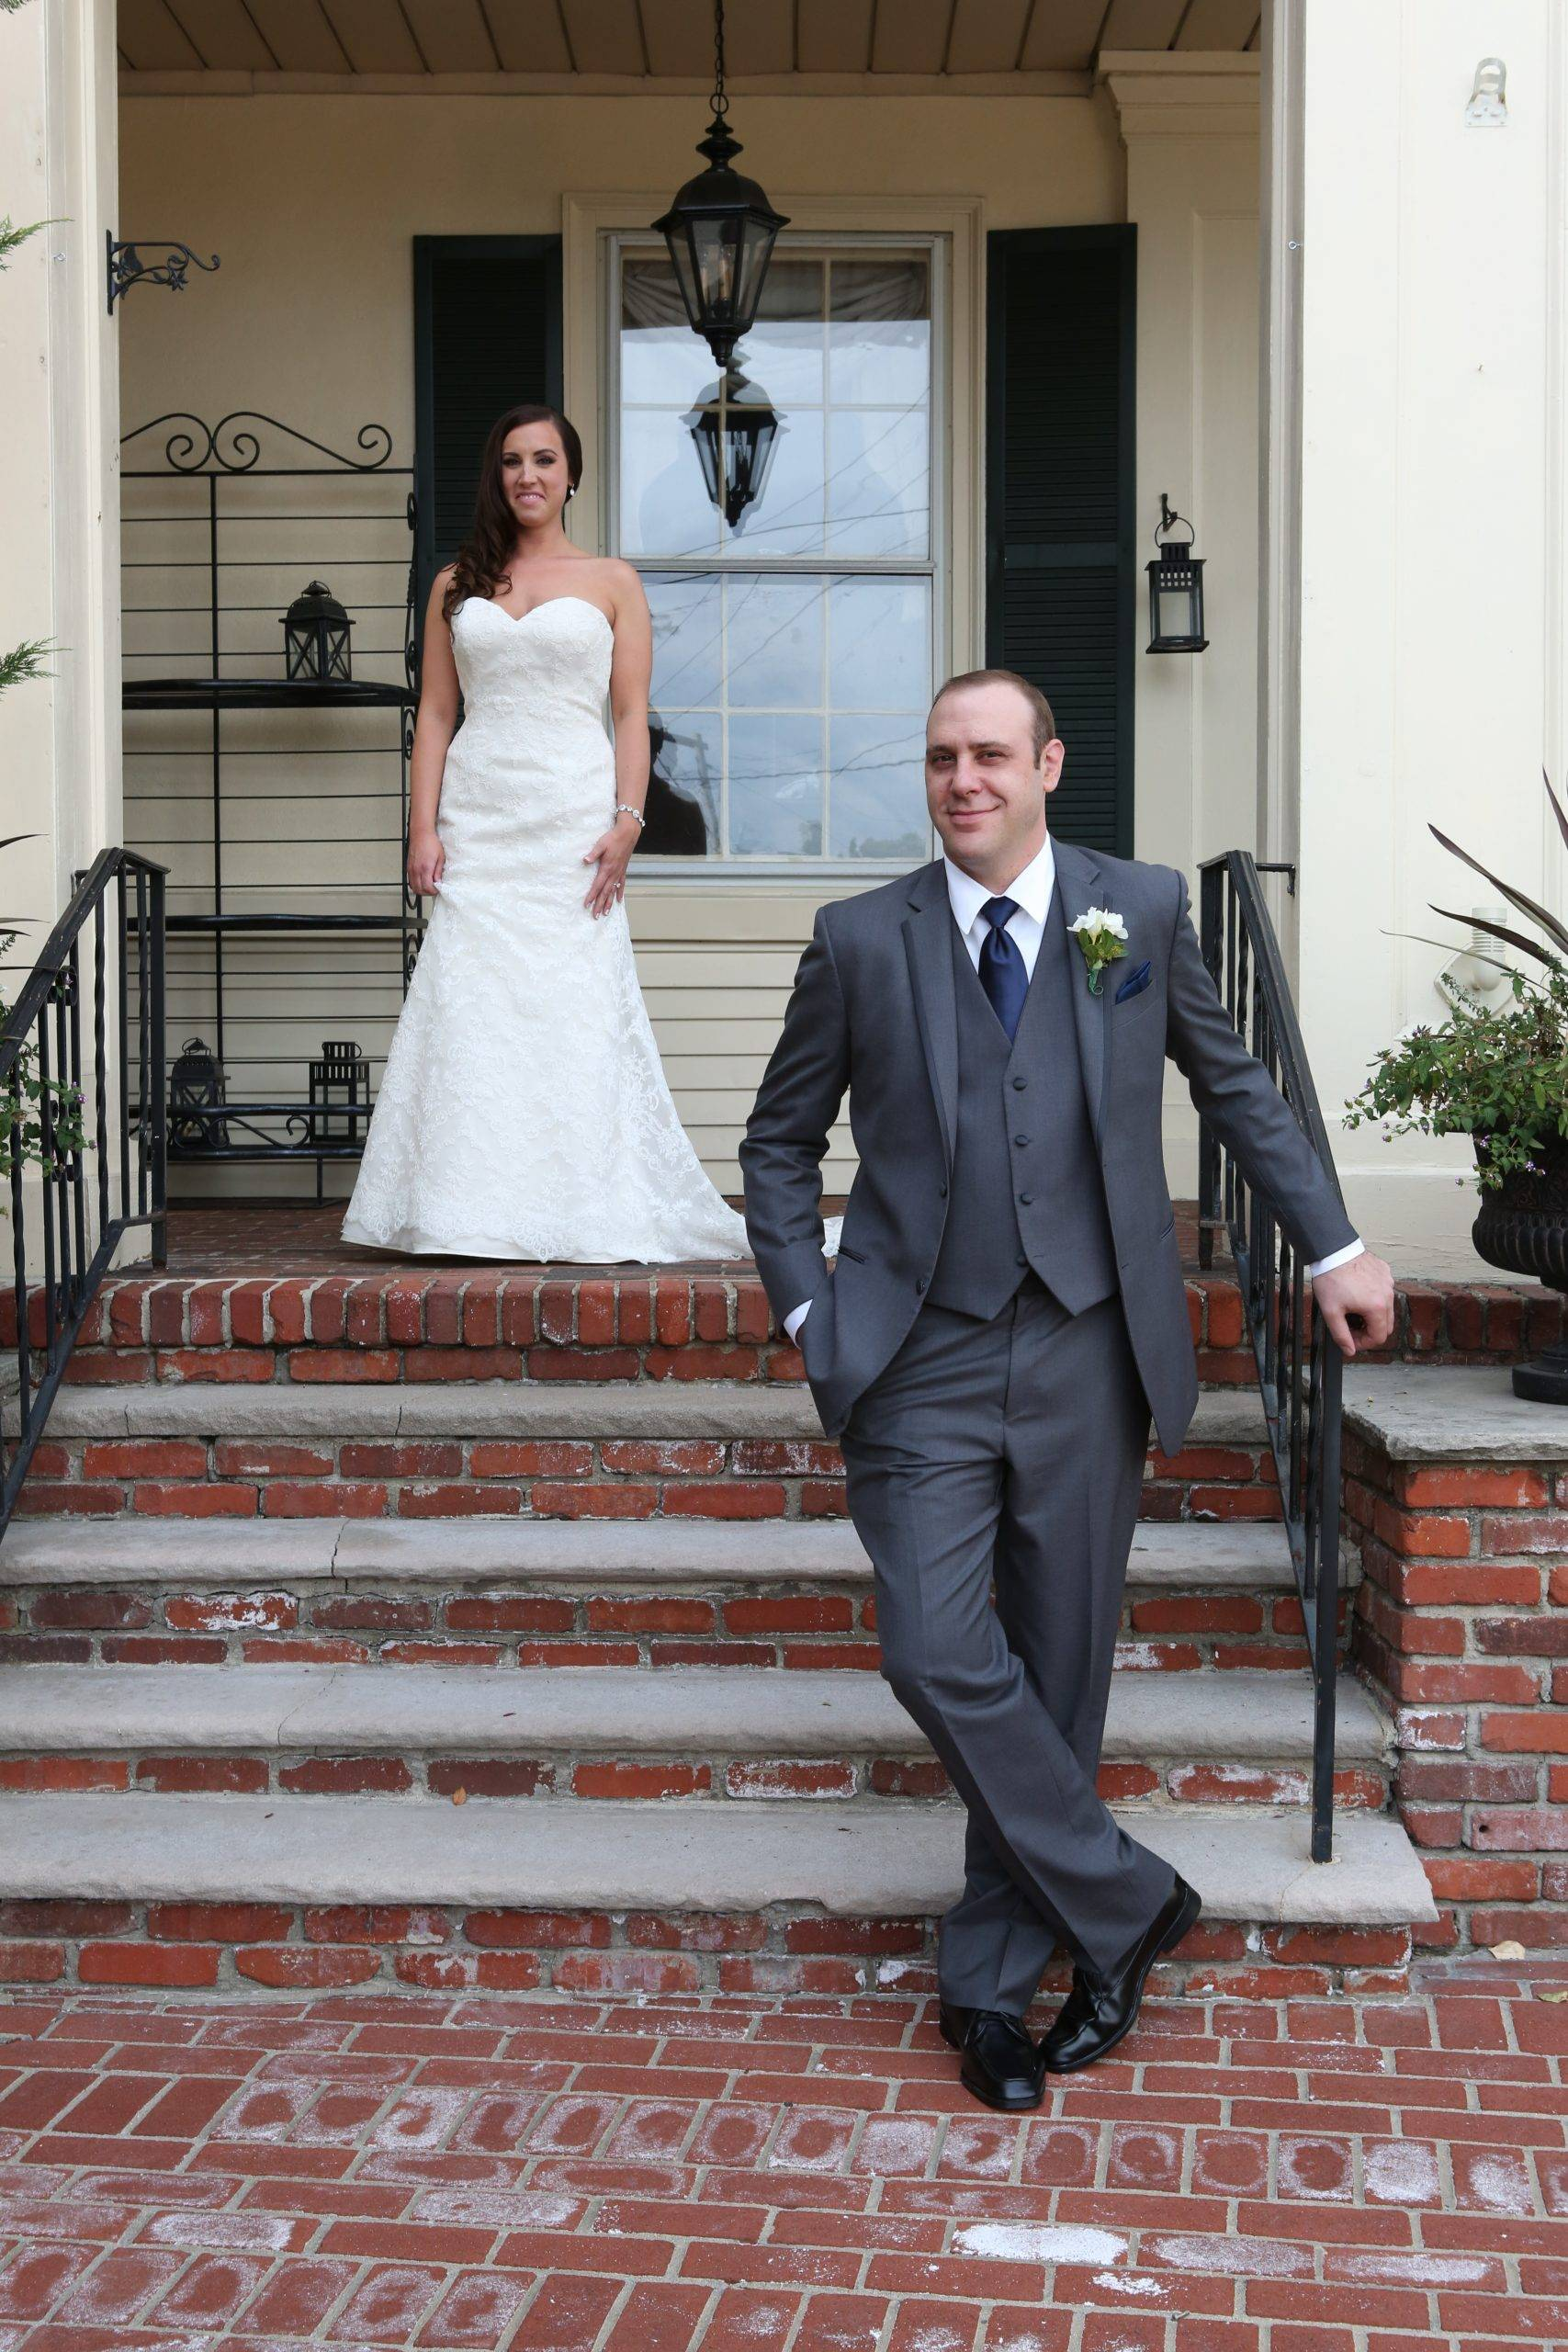 David's Country Inn bride and groom on front porch steps